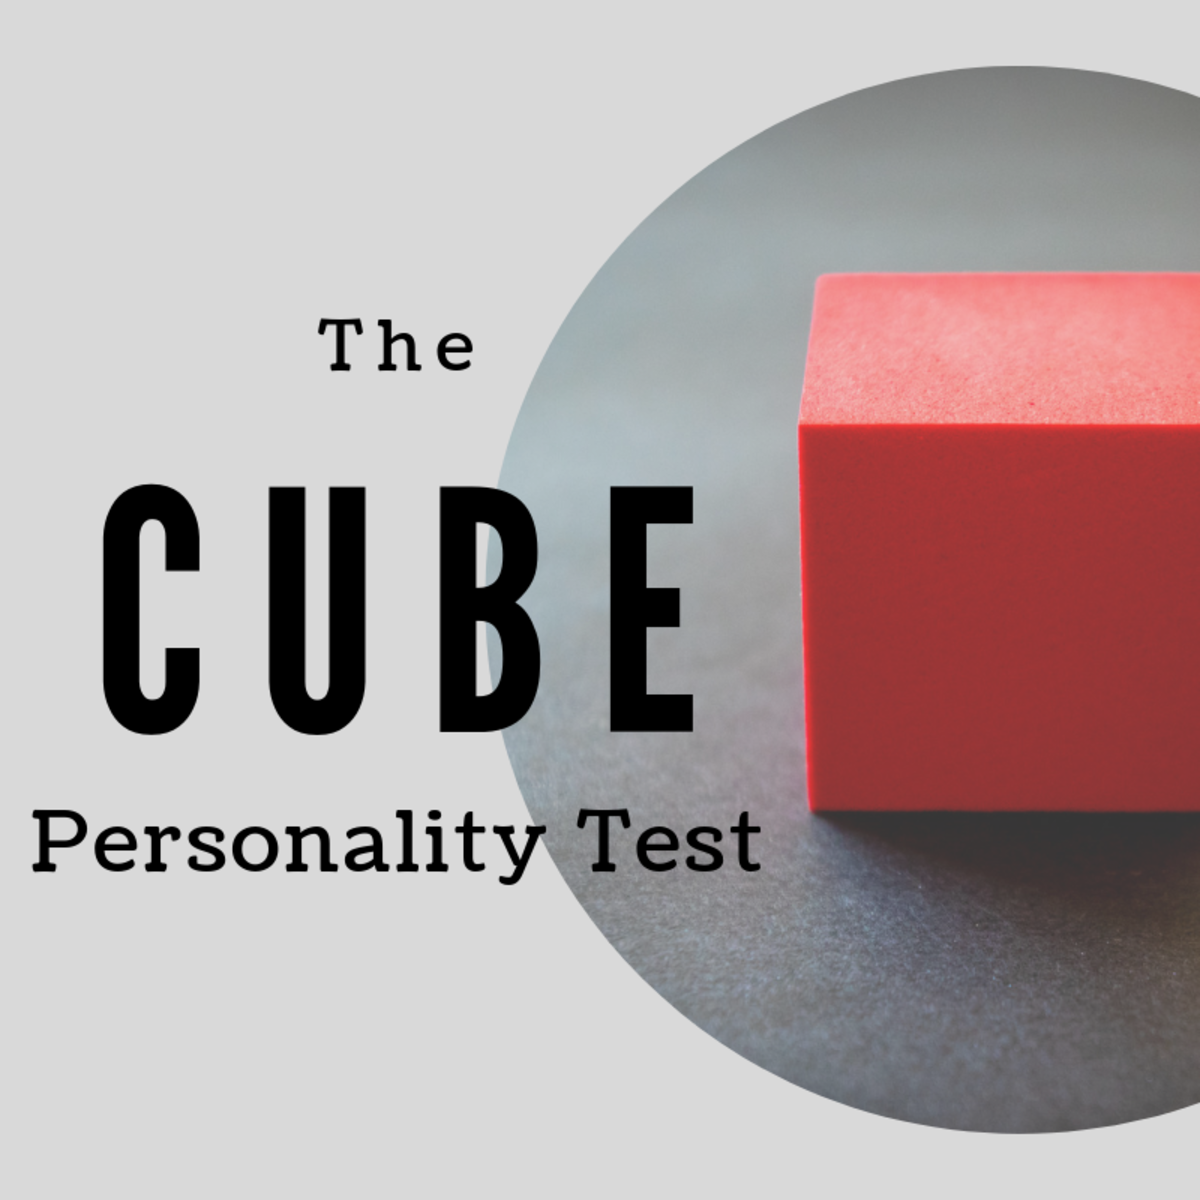 Personality Test: The Field, Cube, Ladder, Horse, and Flower Question